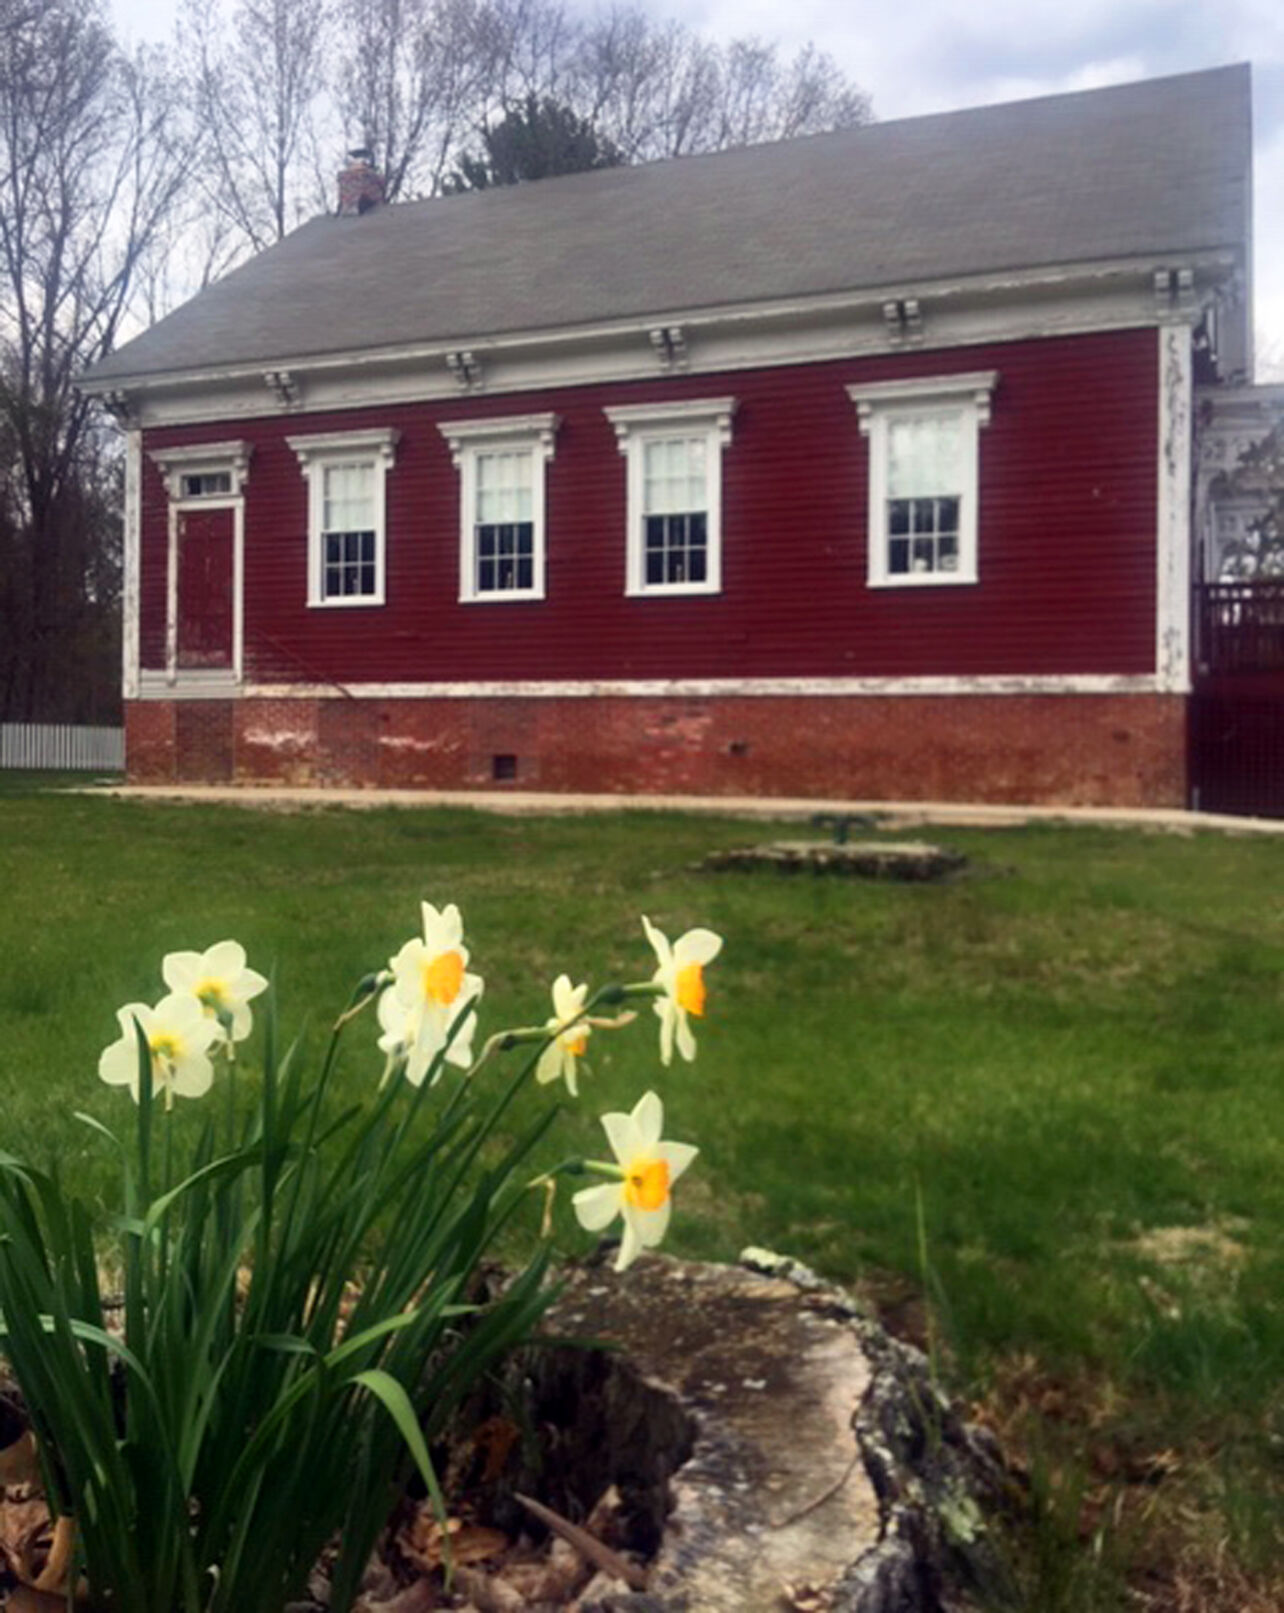 Daffodils outside the Forestdale Schoolhouse